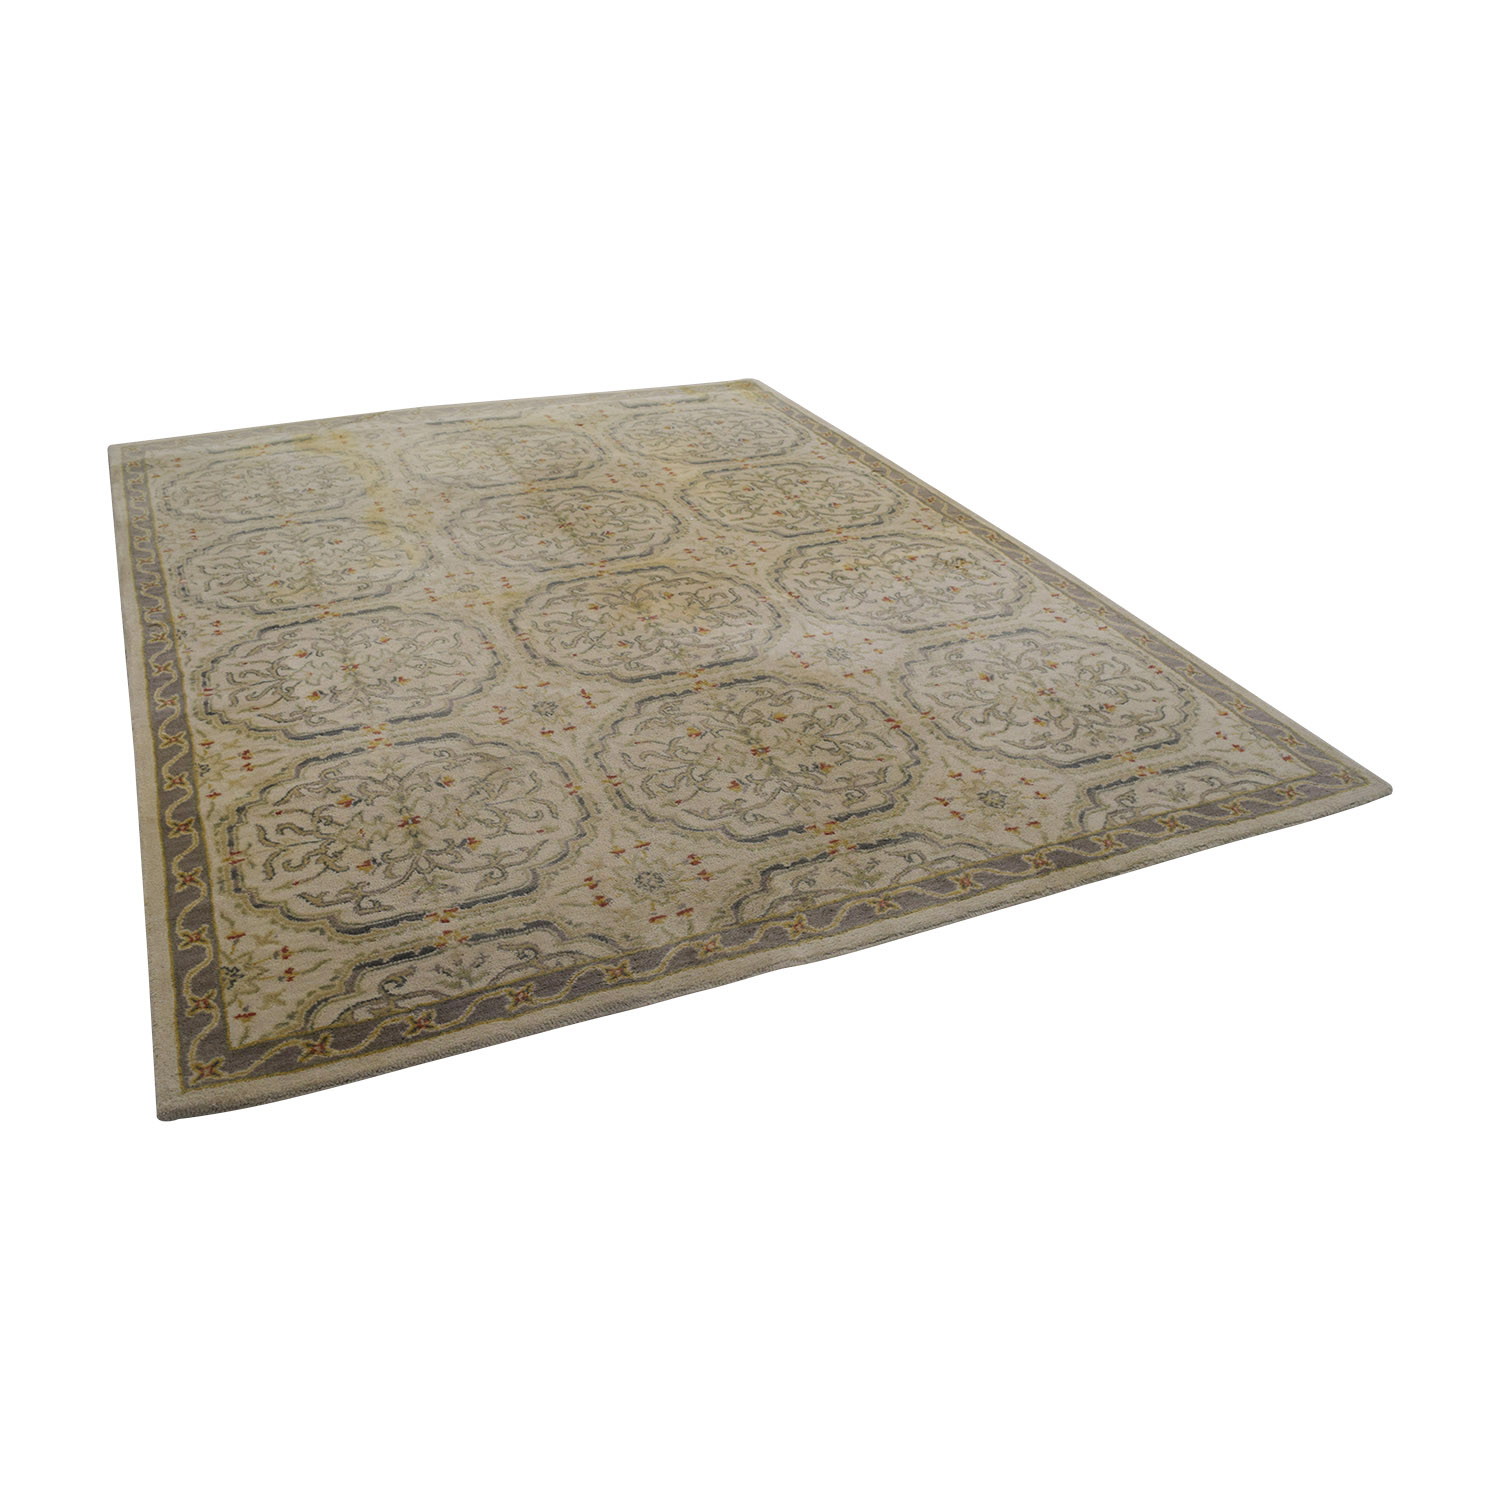 Pottery Barn Pottery Barn Beige and Grey Traditional Rug nj